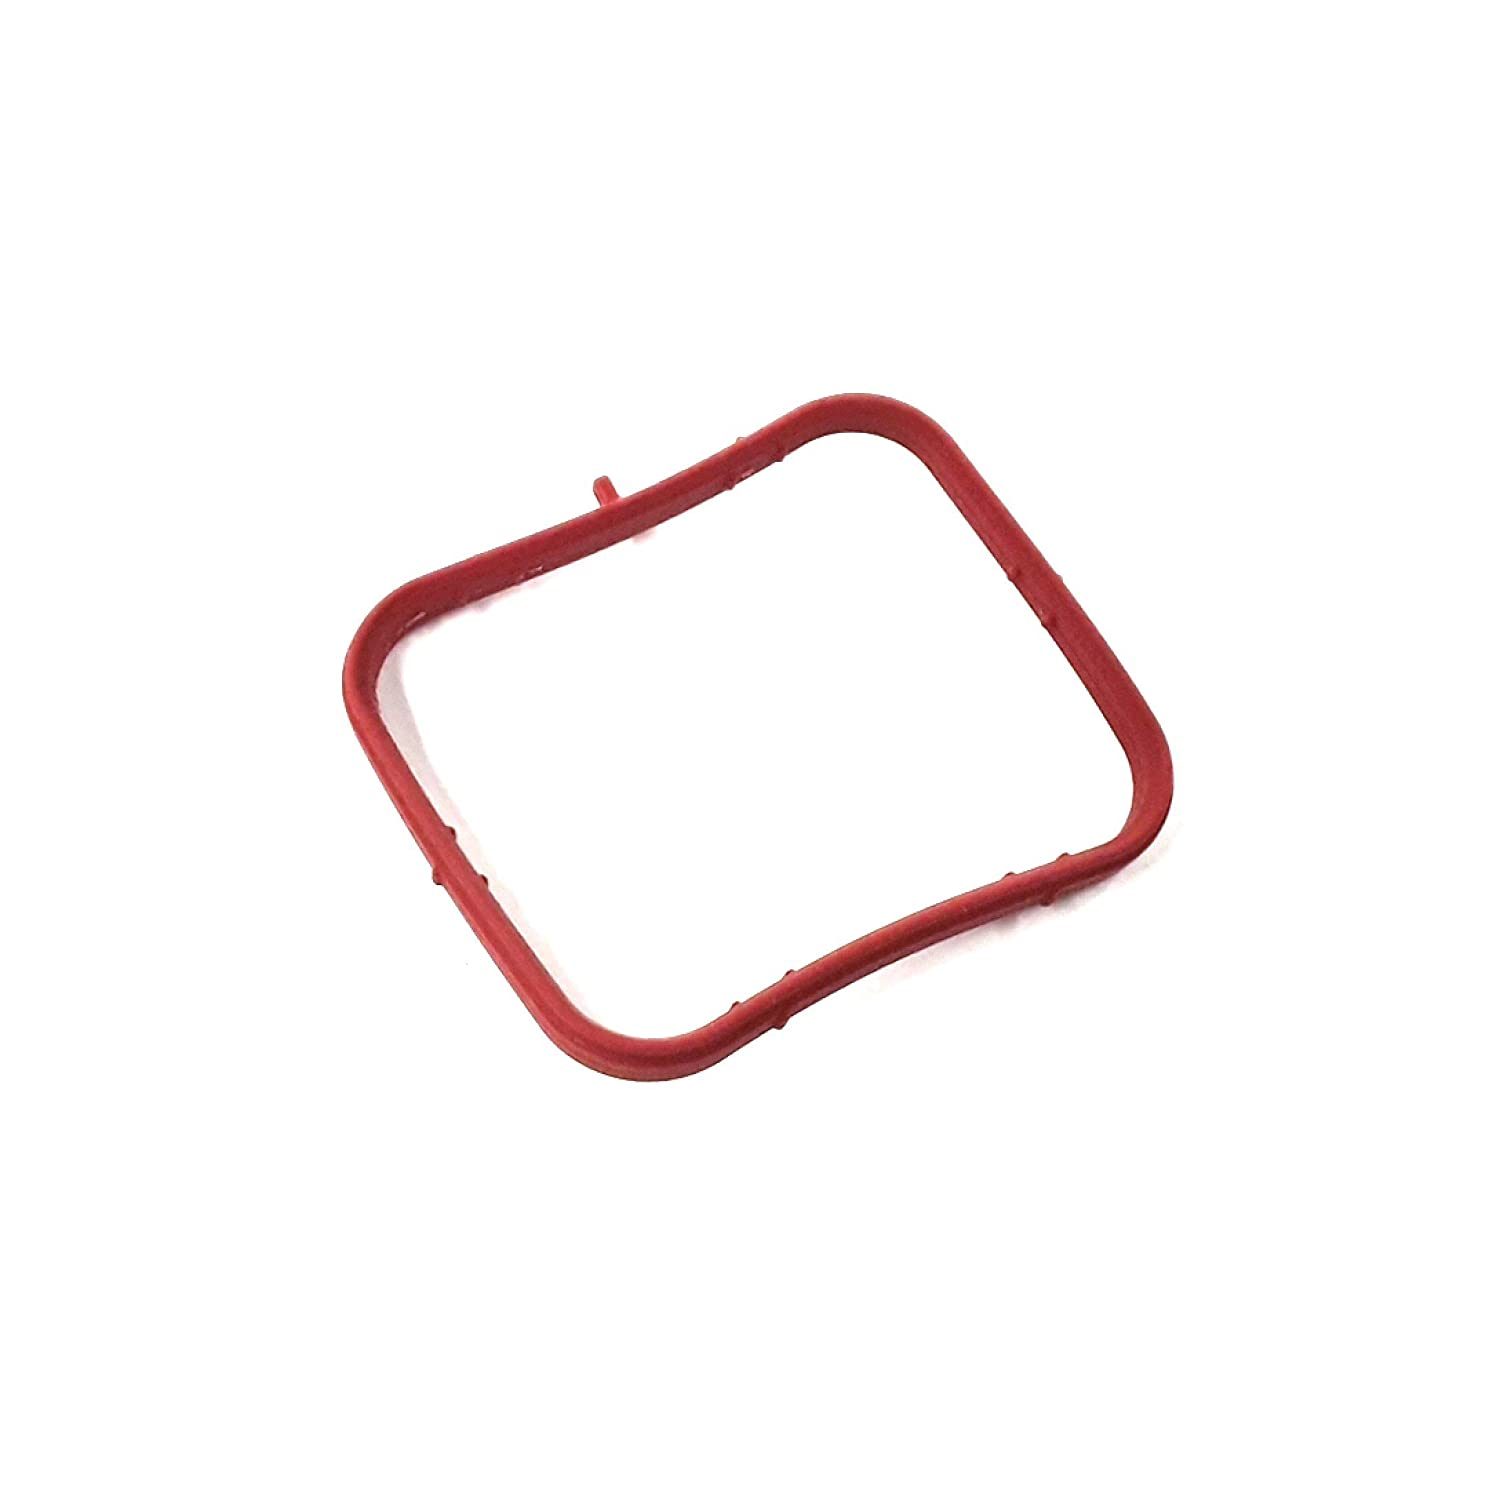 Volkswagen 03H 133 237 G, Fuel Injection Plenum Gasket